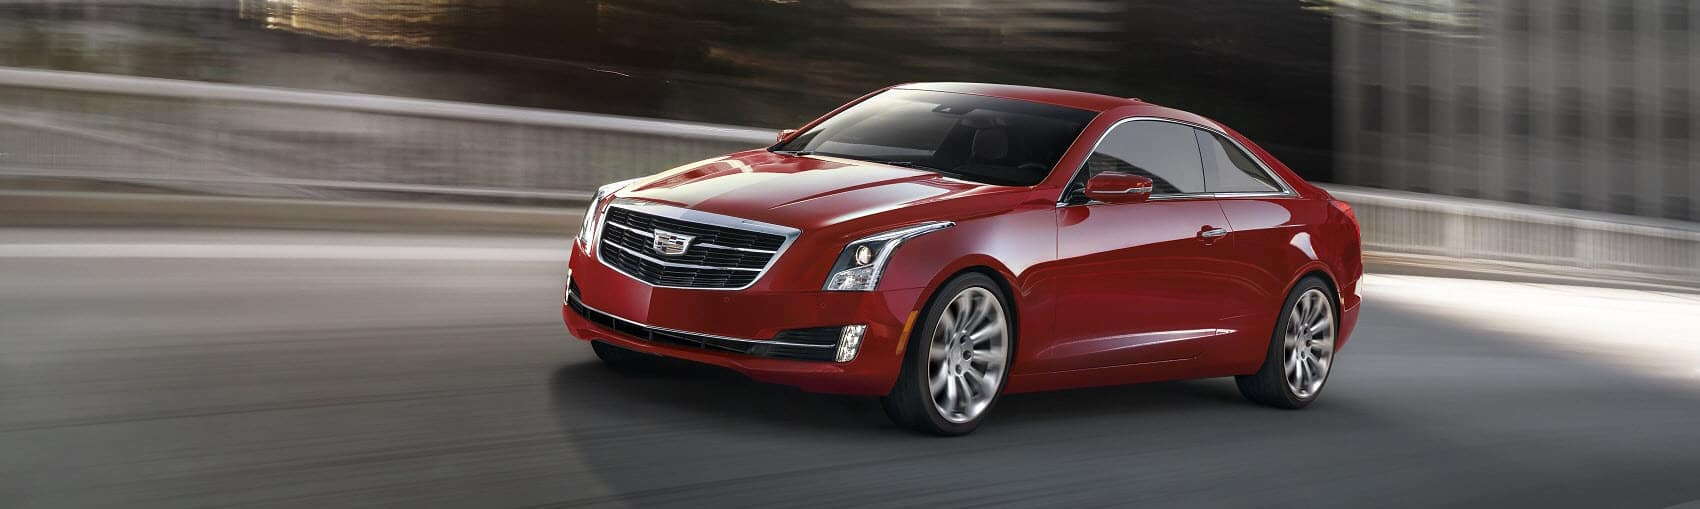 Used Red Cadillac